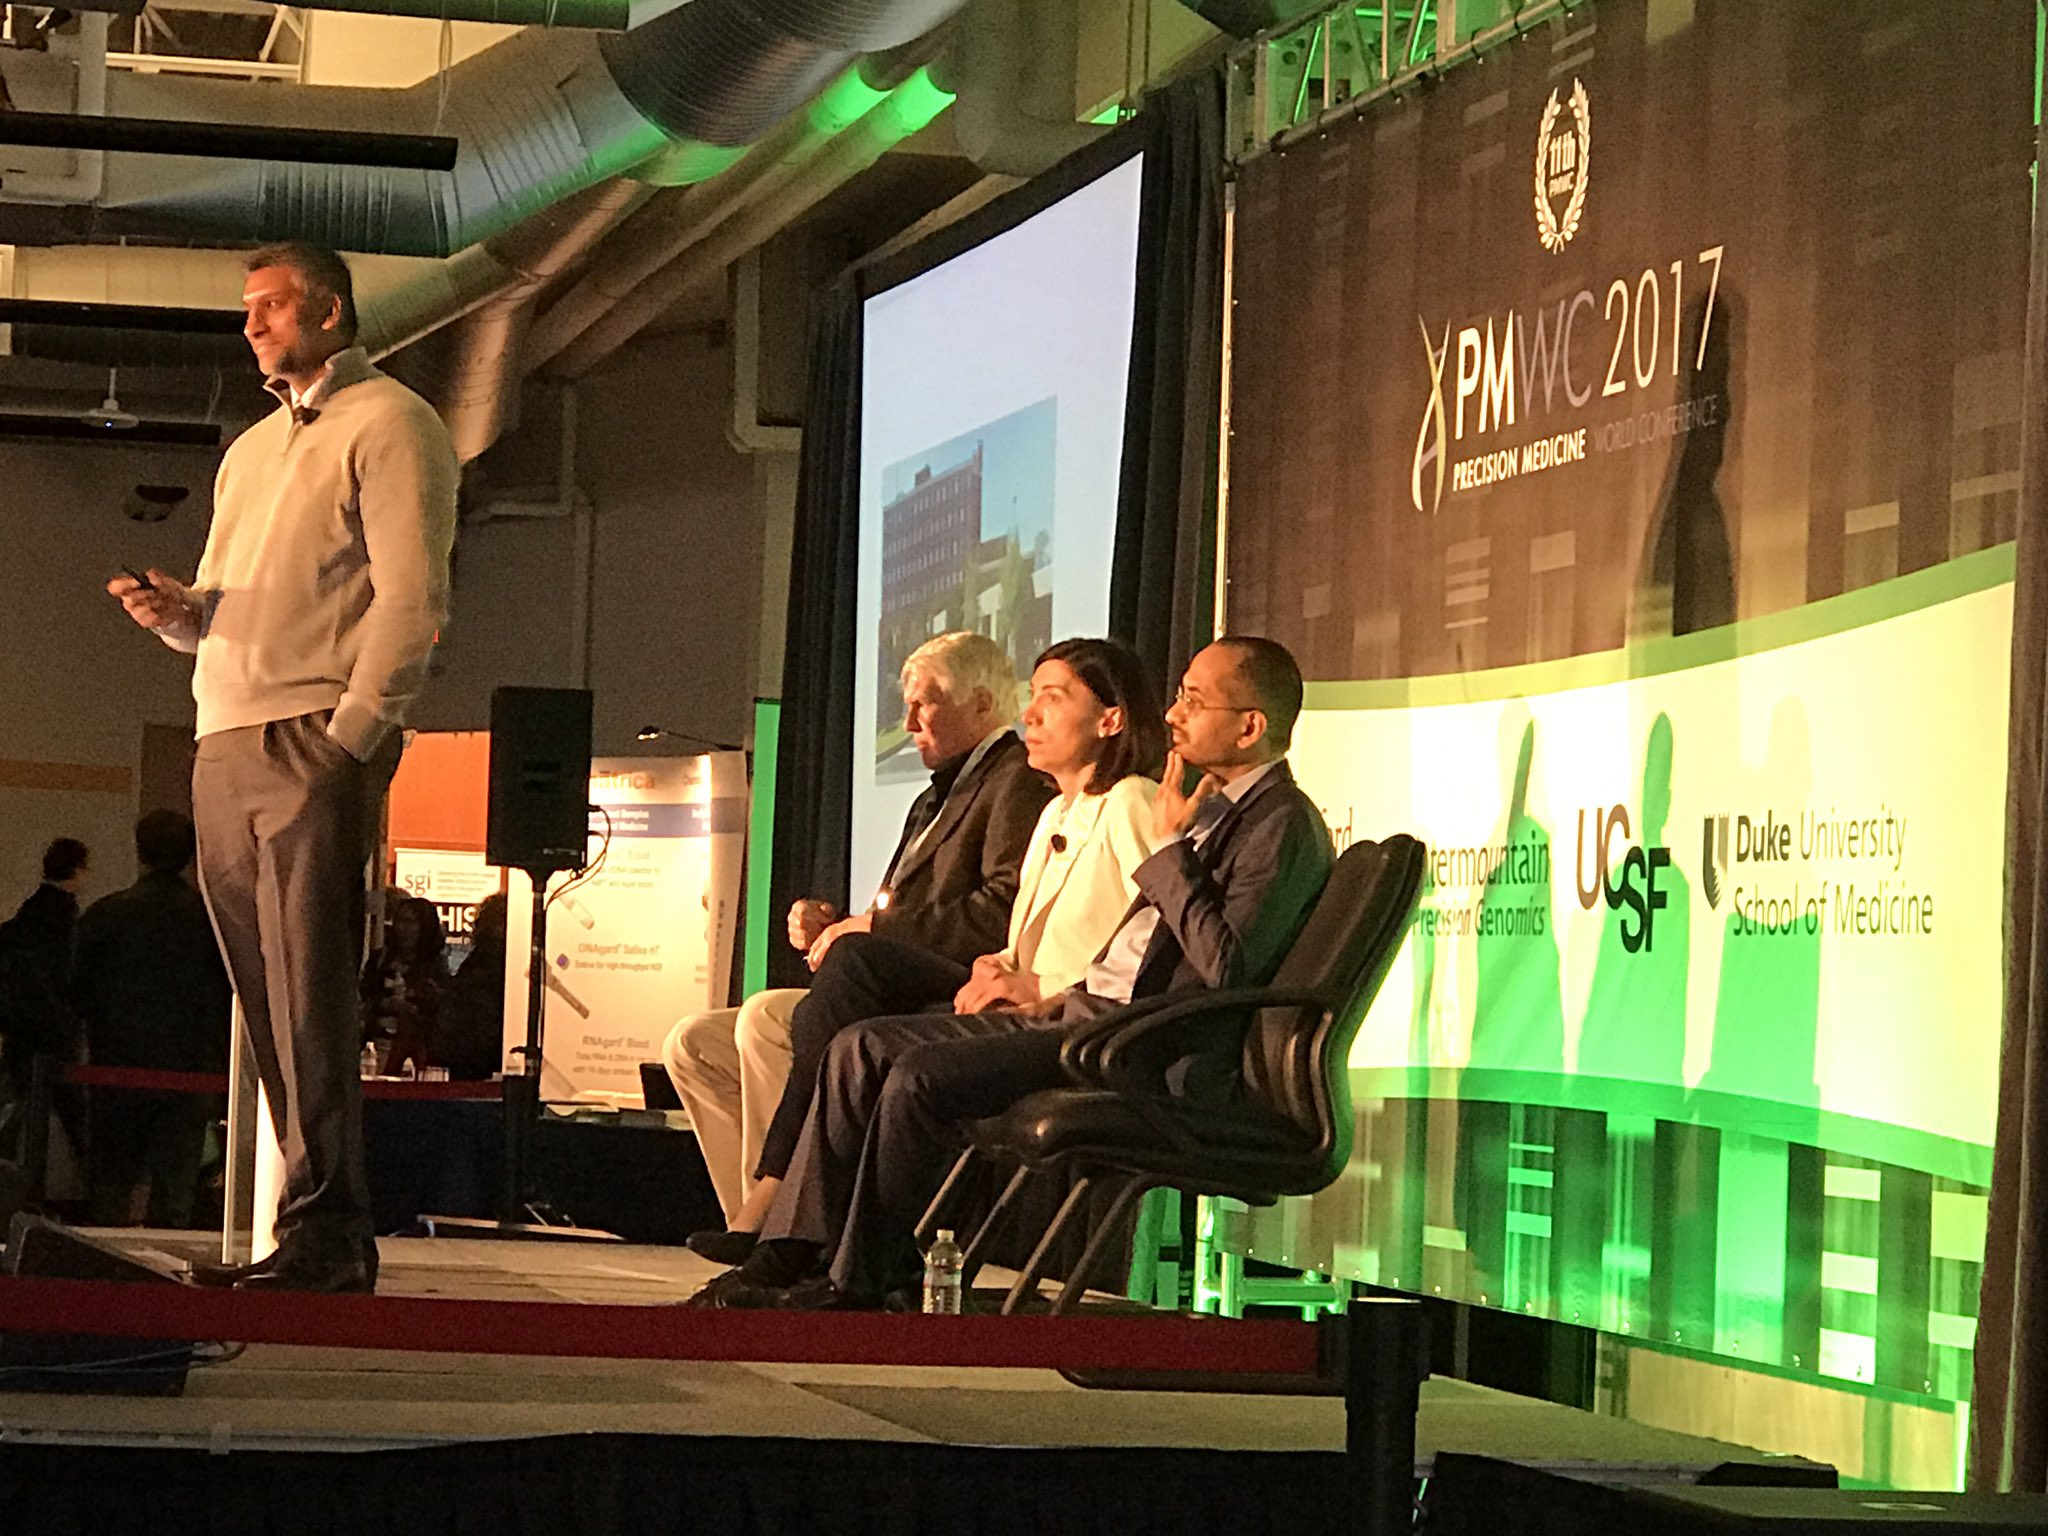 """""""Collision of Research & Emerging Technologies points2why #precisionmedicine is not new"""" @OracleHealthSci 'a Dr. Kahlon #PMWC17 https://t.co/hC60toxd6Z"""